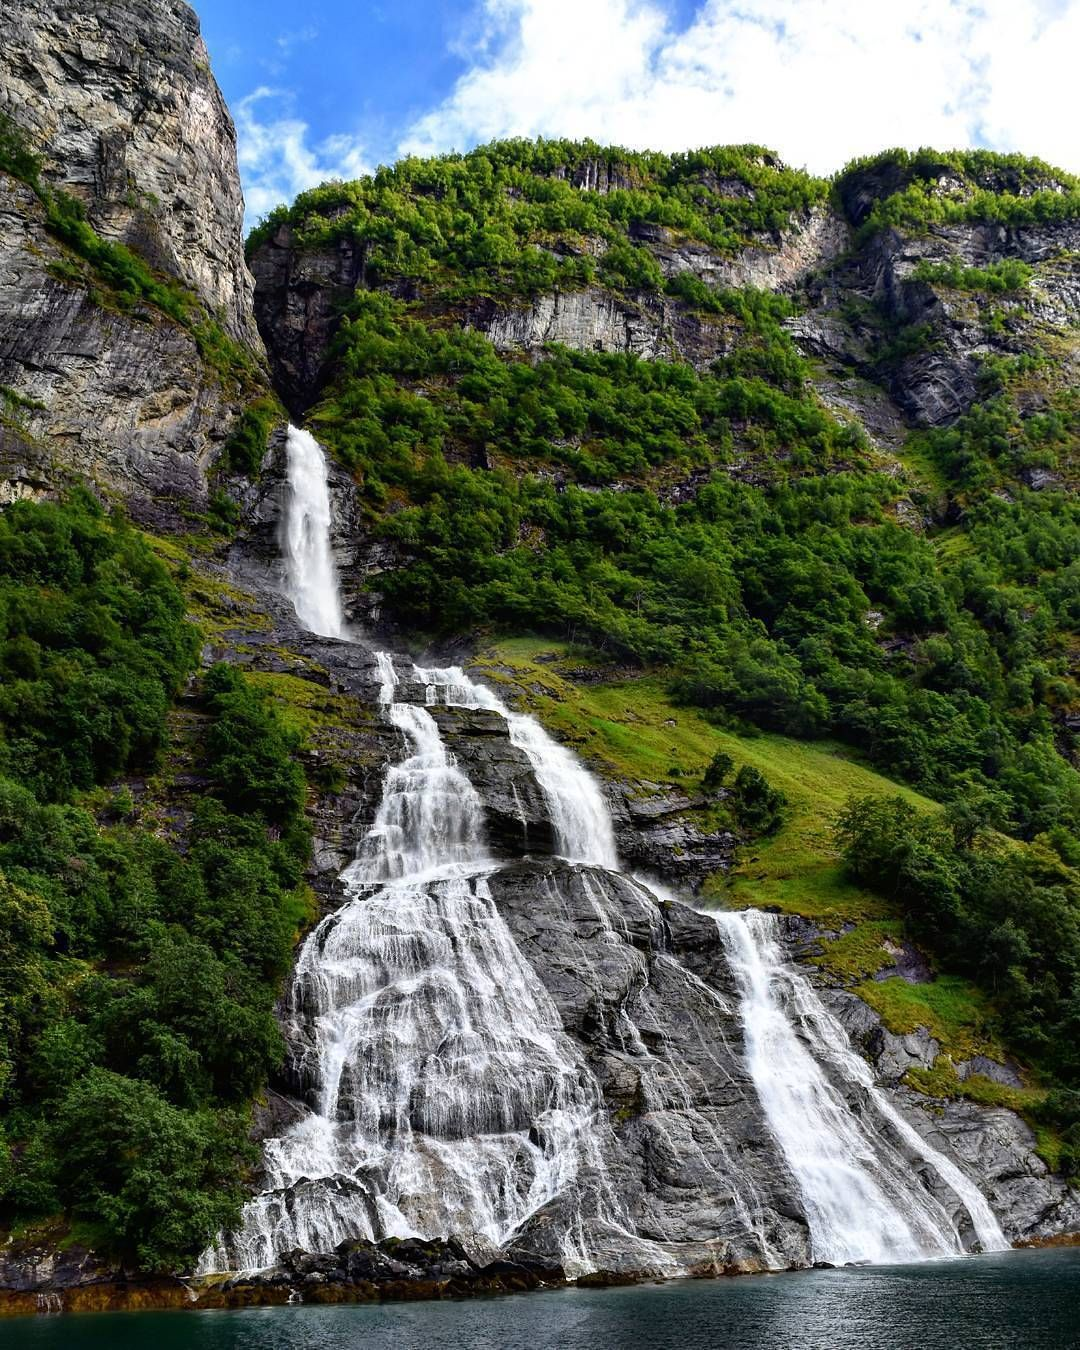 Friaren Waterfall, Norway. Friaren is a 440 meters high lone waterfall sitting across from the famed Seven Sisters on the Geiranger Fjord. Friaren is situated about 2,5 km west of Geiranger. For visiting the waterfall is is possible to take the ferry or rent a boat in Geiranger.